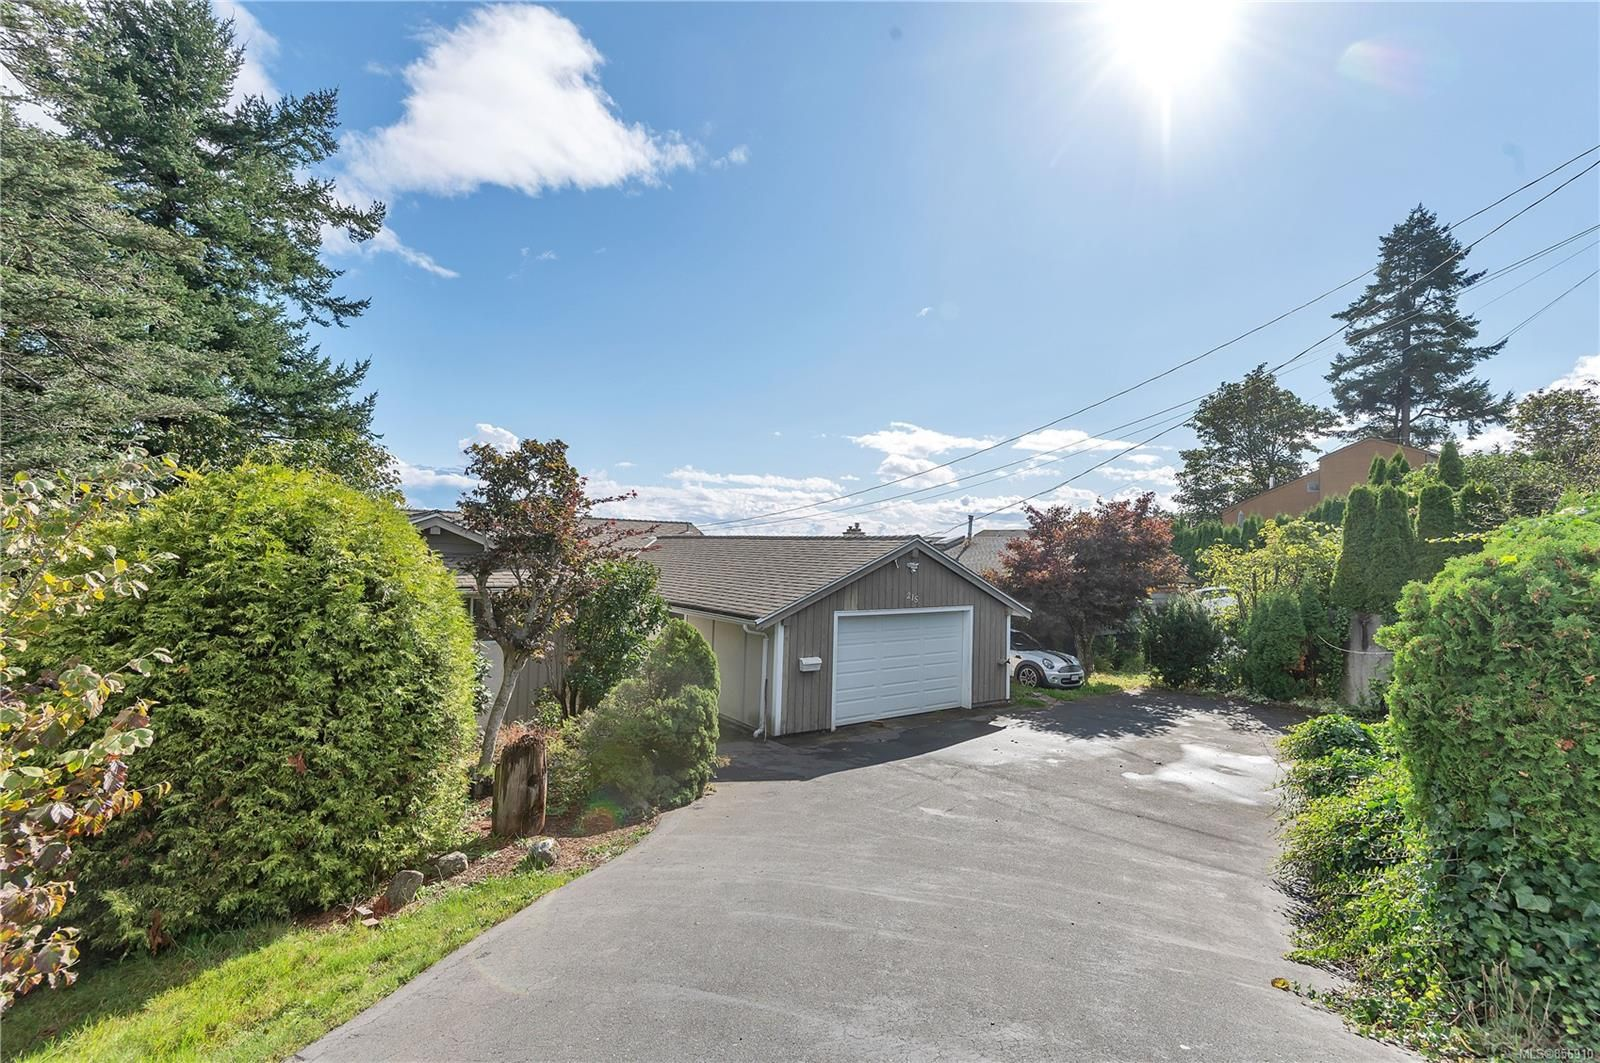 Photo 48: Photos: 215 S Alder St in : CR Campbell River Central House for sale (Campbell River)  : MLS®# 856910